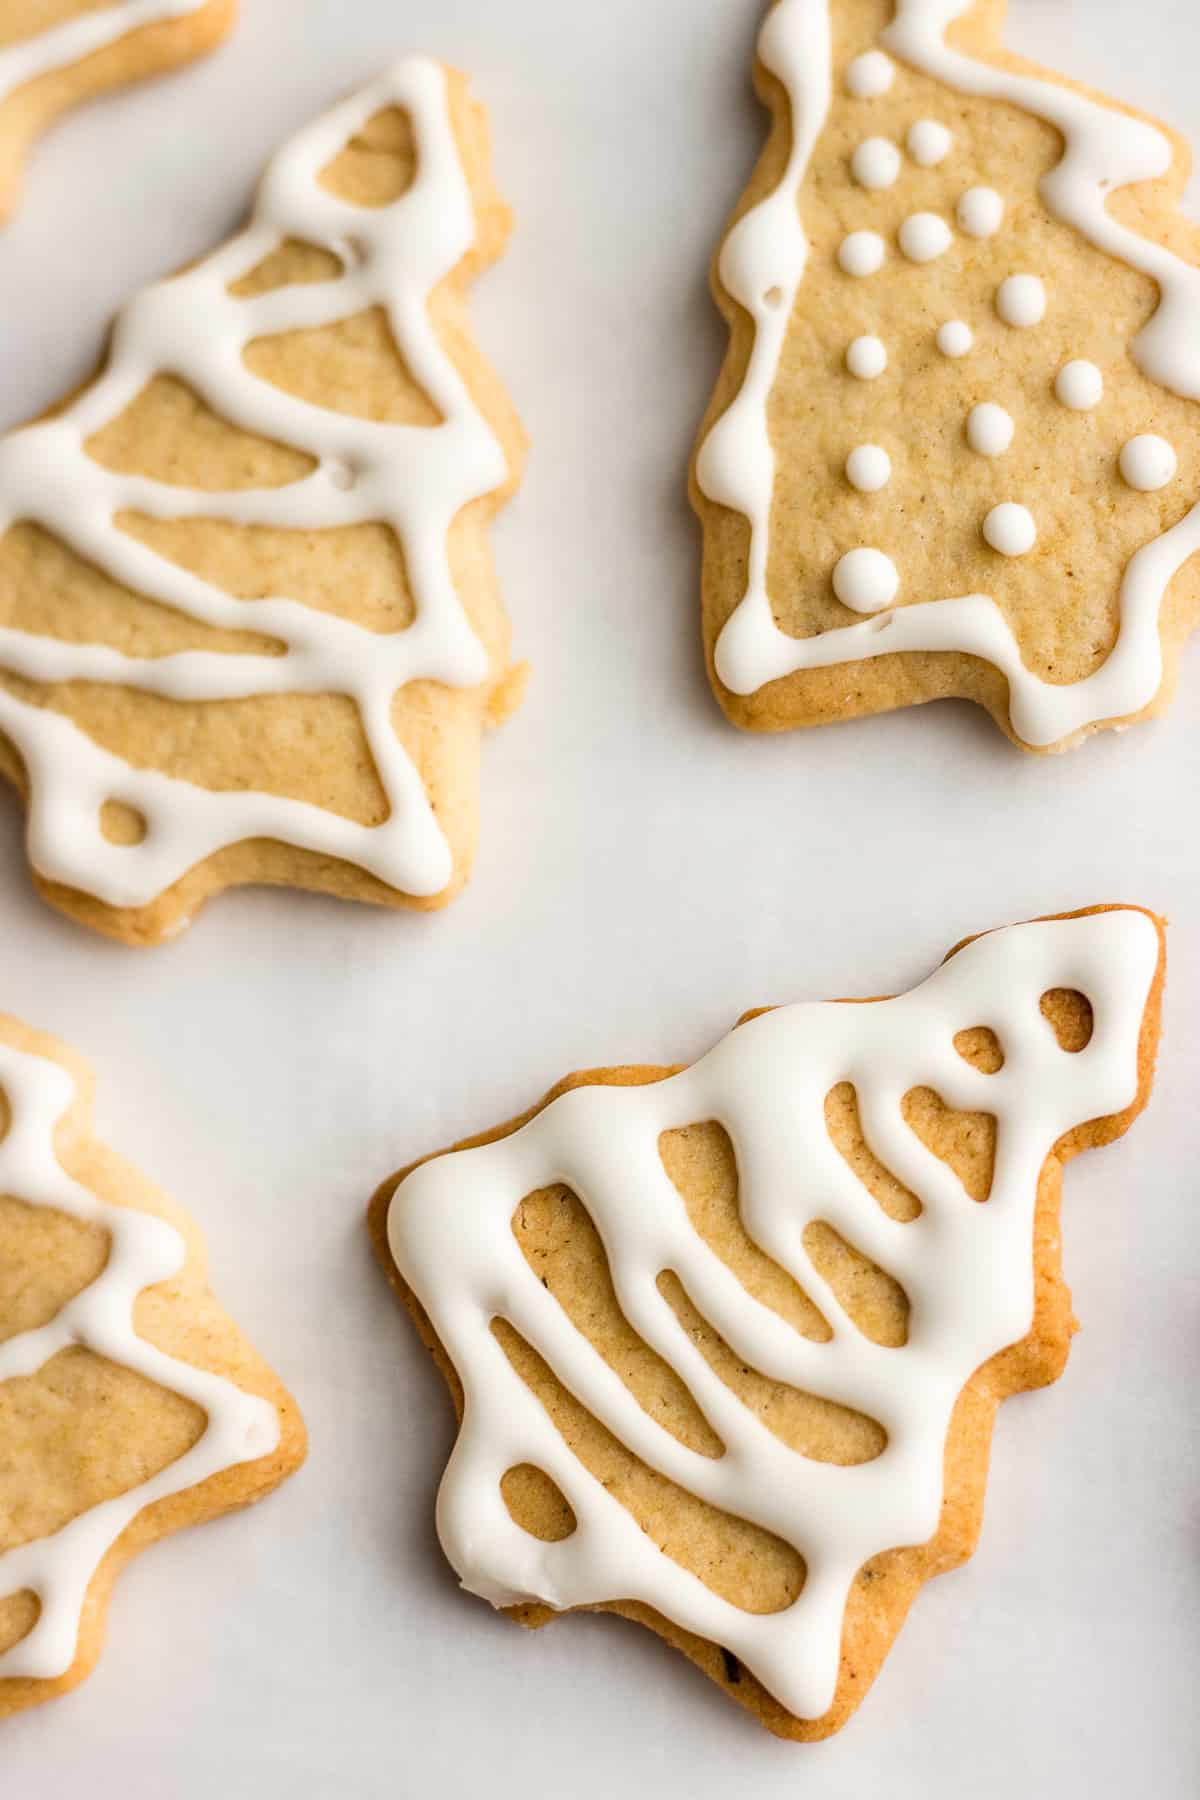 Vegan ginger spice cookies shaped like Christmas trees and decorated with icing